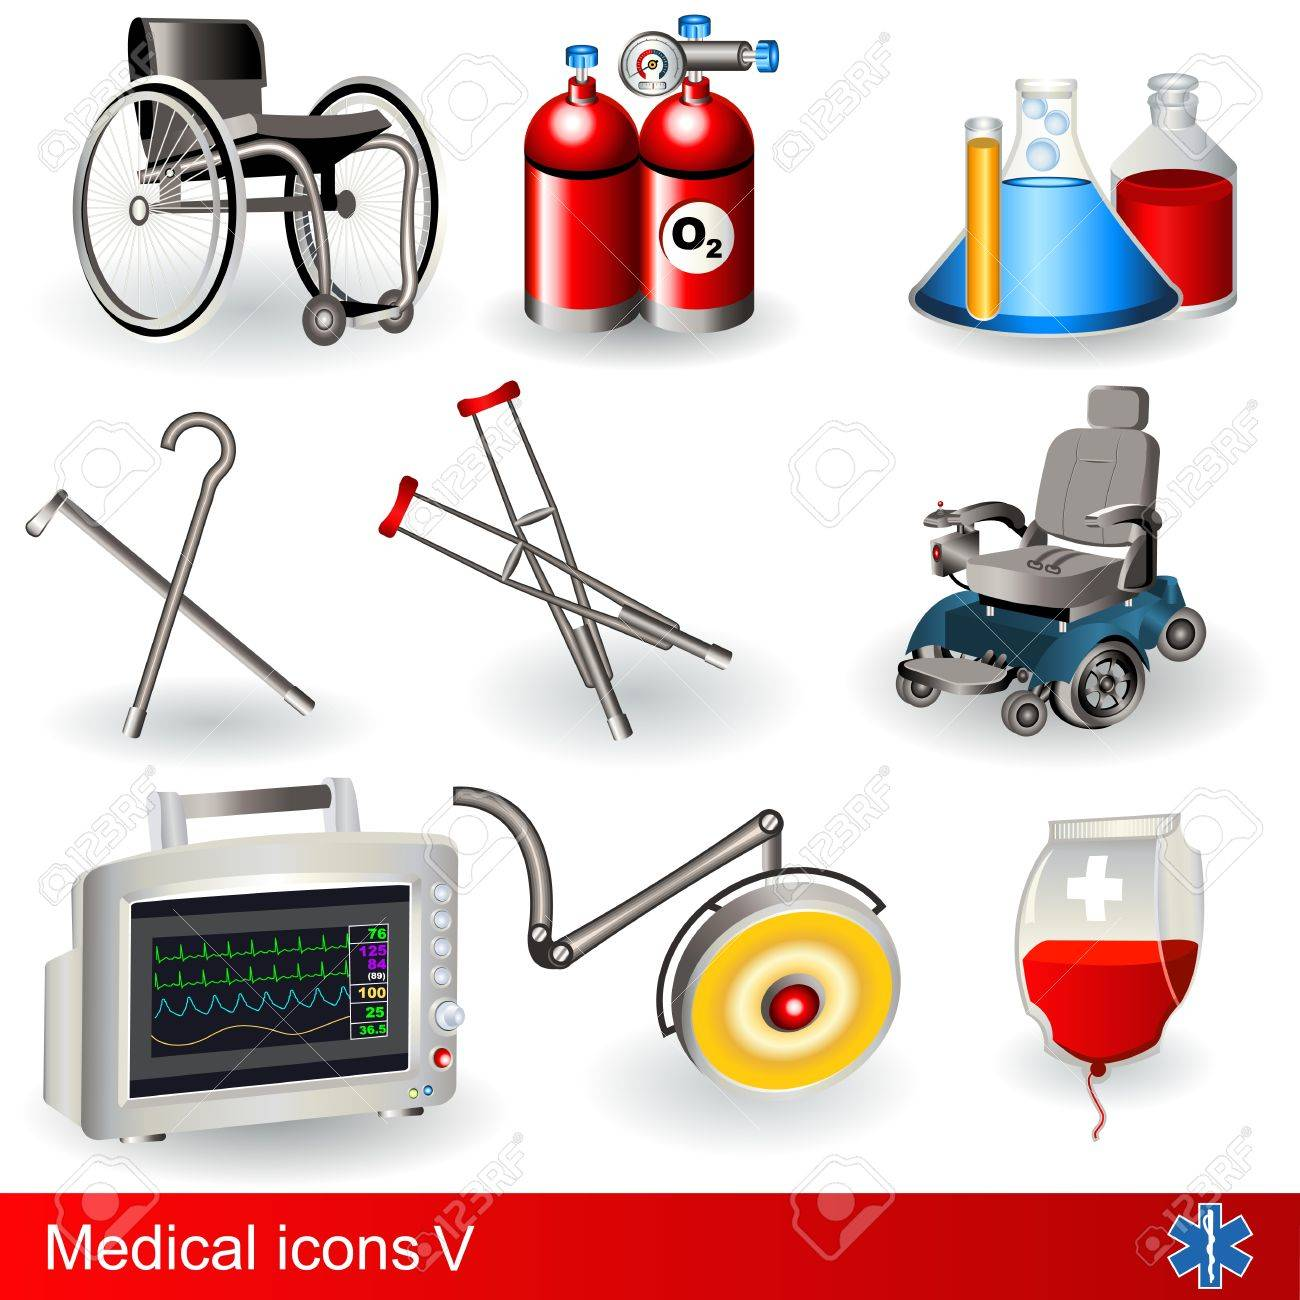 Collection of medical icons - part 5 - 13300921